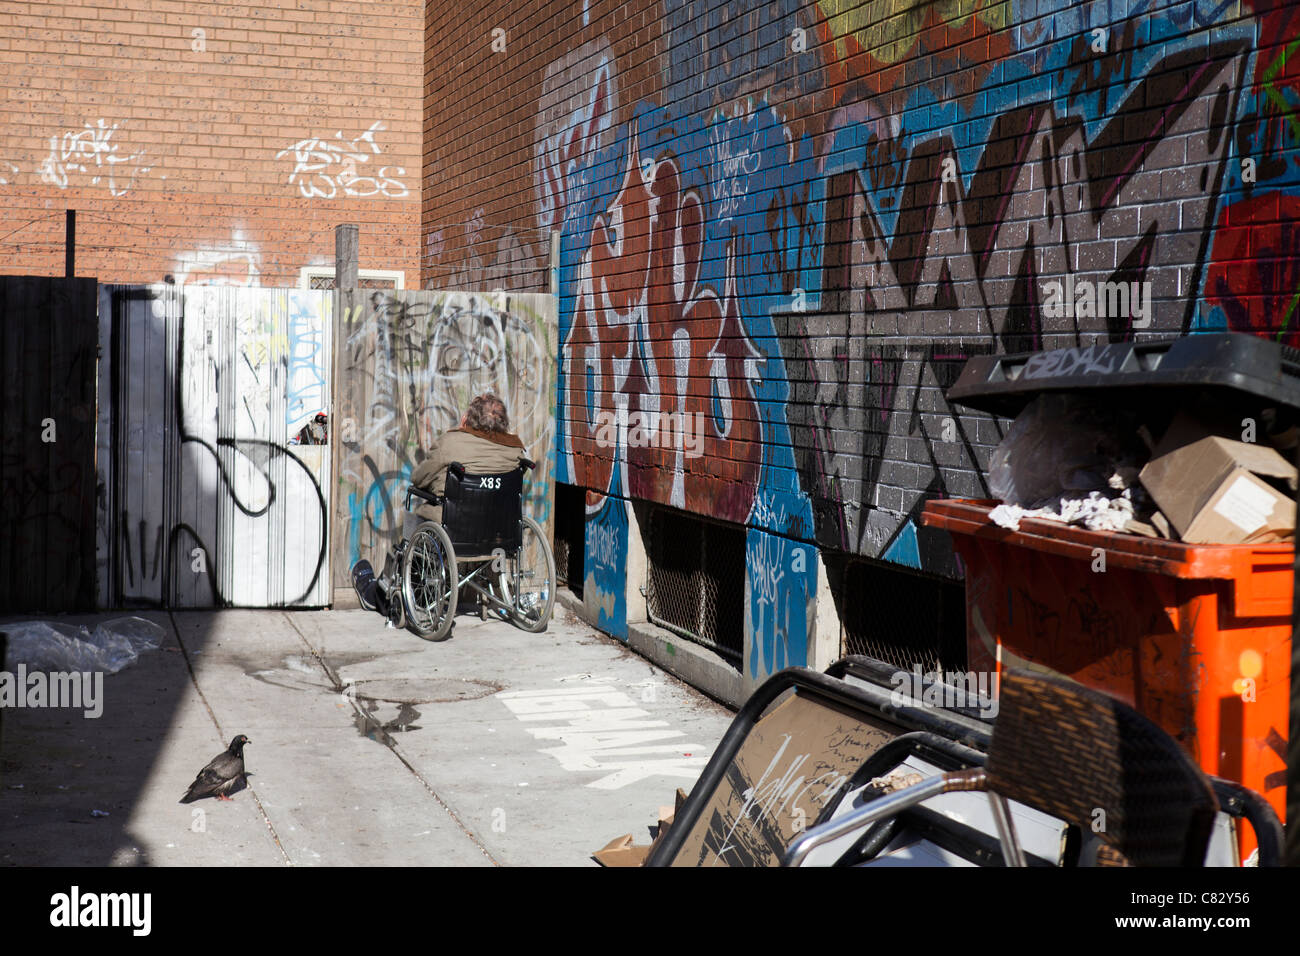 A transient staring at a wall in a back alley of St. Kilda, Melbourne, Australia. - Stock Image